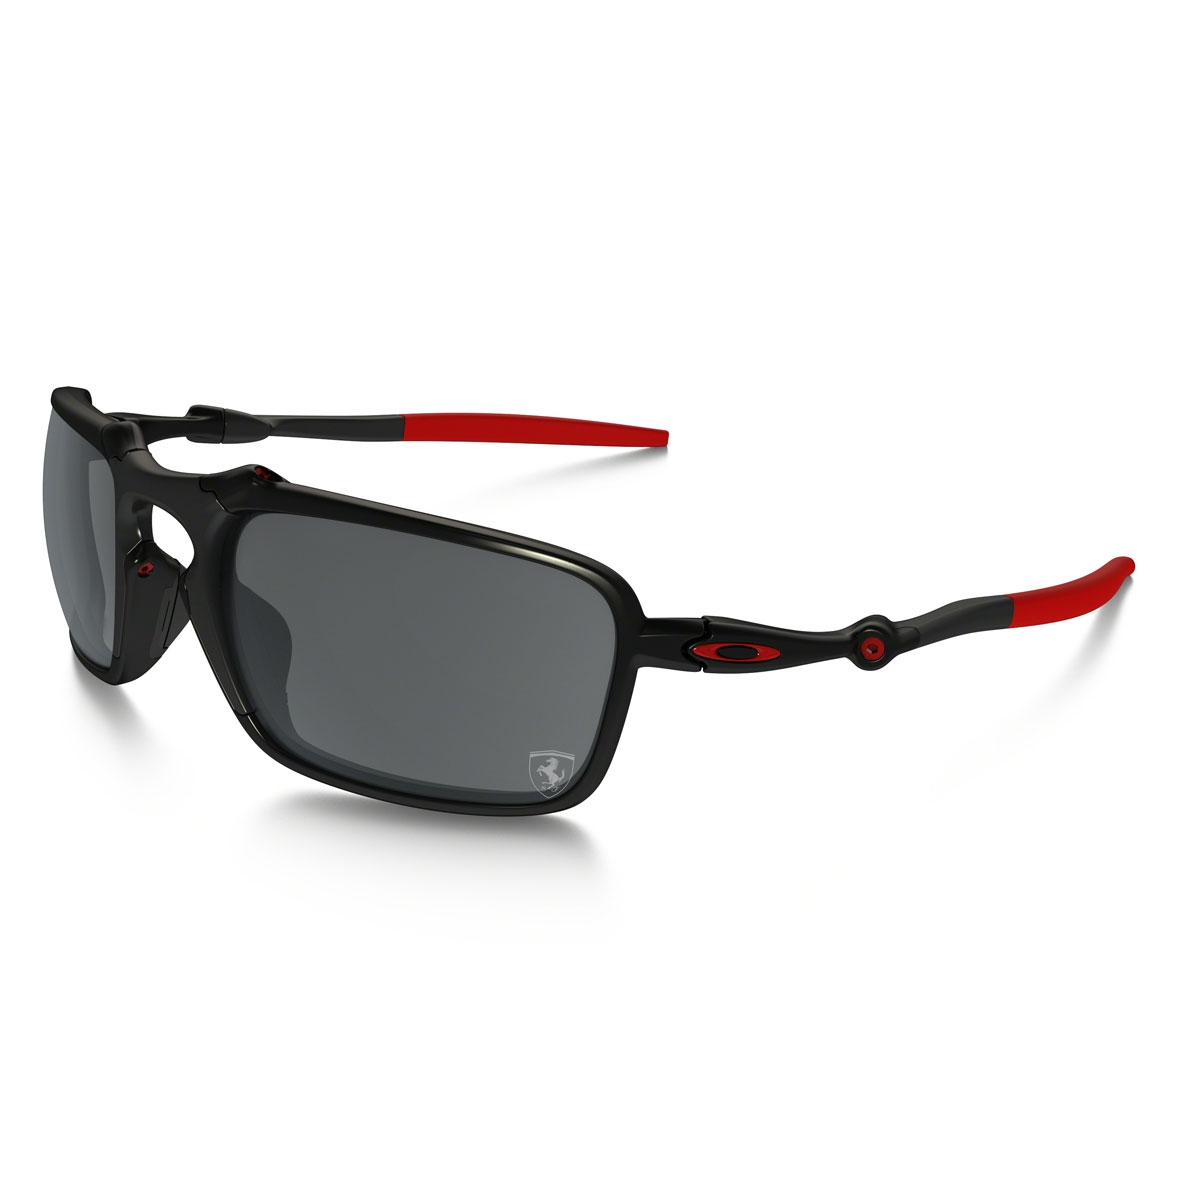 eaa541df78 Image of Oakley Badman Scuderia Ferrari Collection Polarized Sunglasses -  Dark Carbon Frame Black Iridium